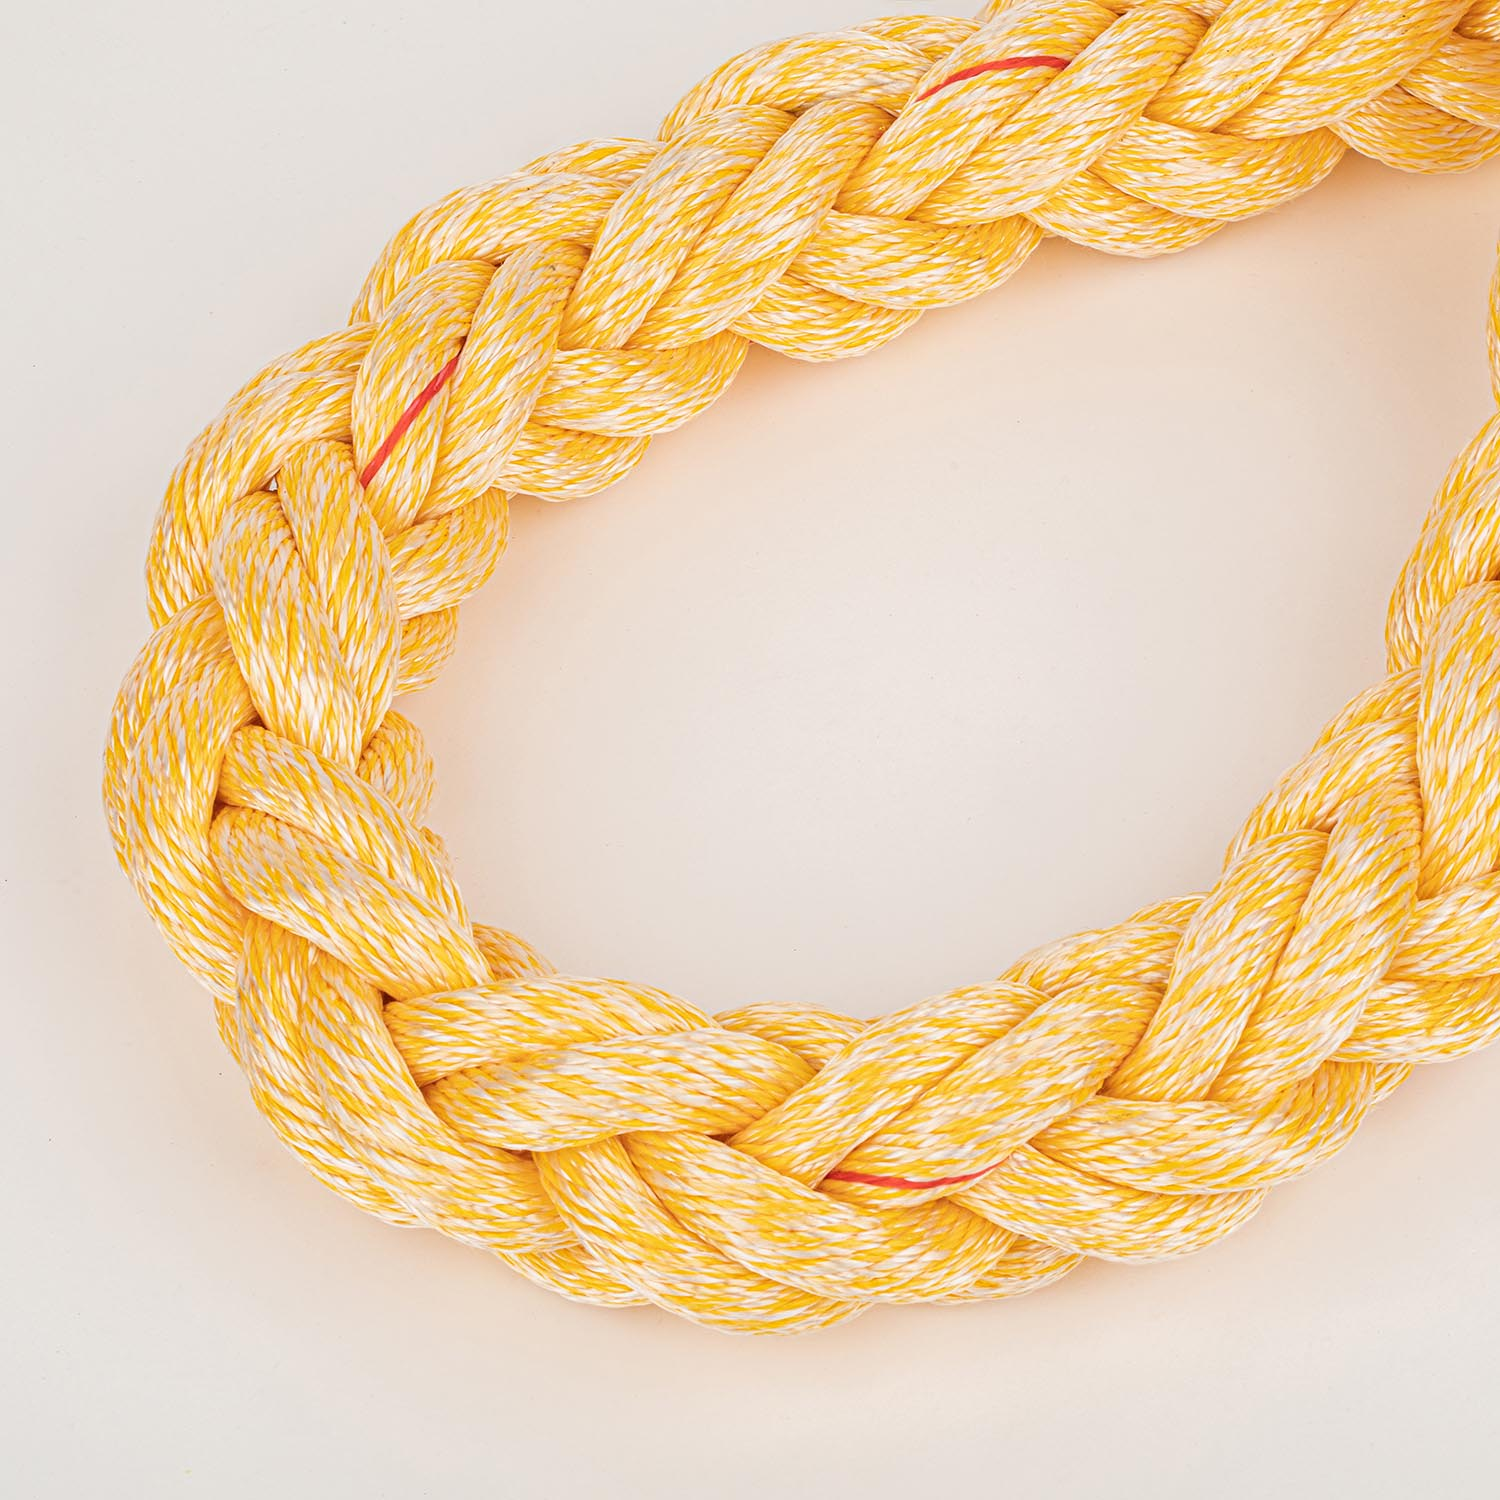 Mixed Double Strands of Polypropylene Polyester Rope